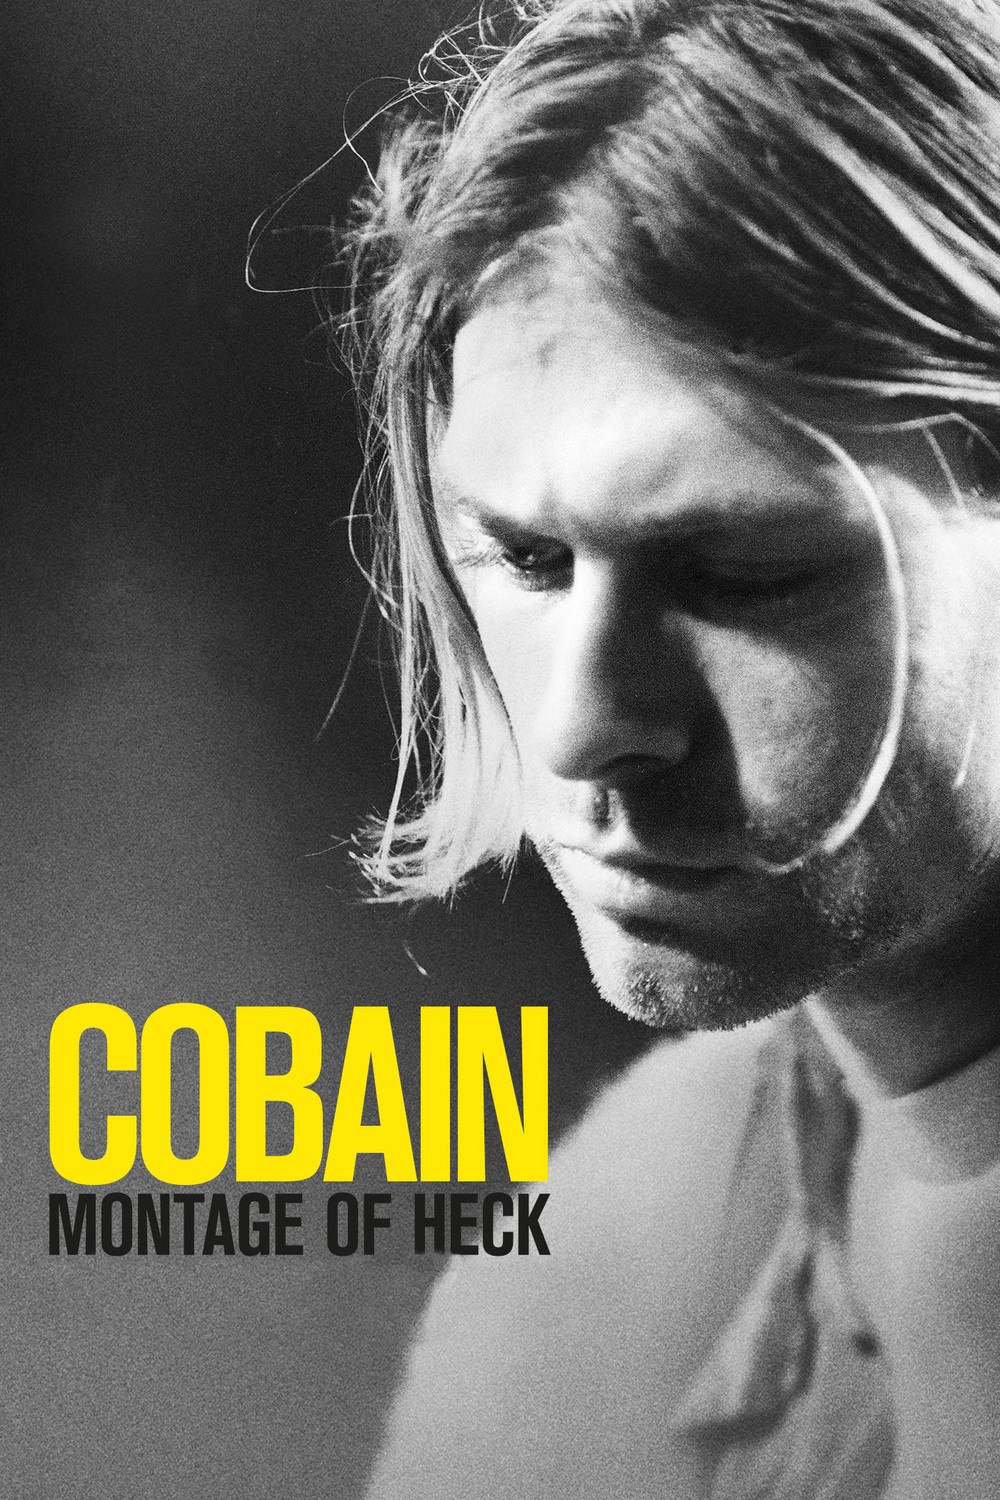 Cobain: Montage of Heck